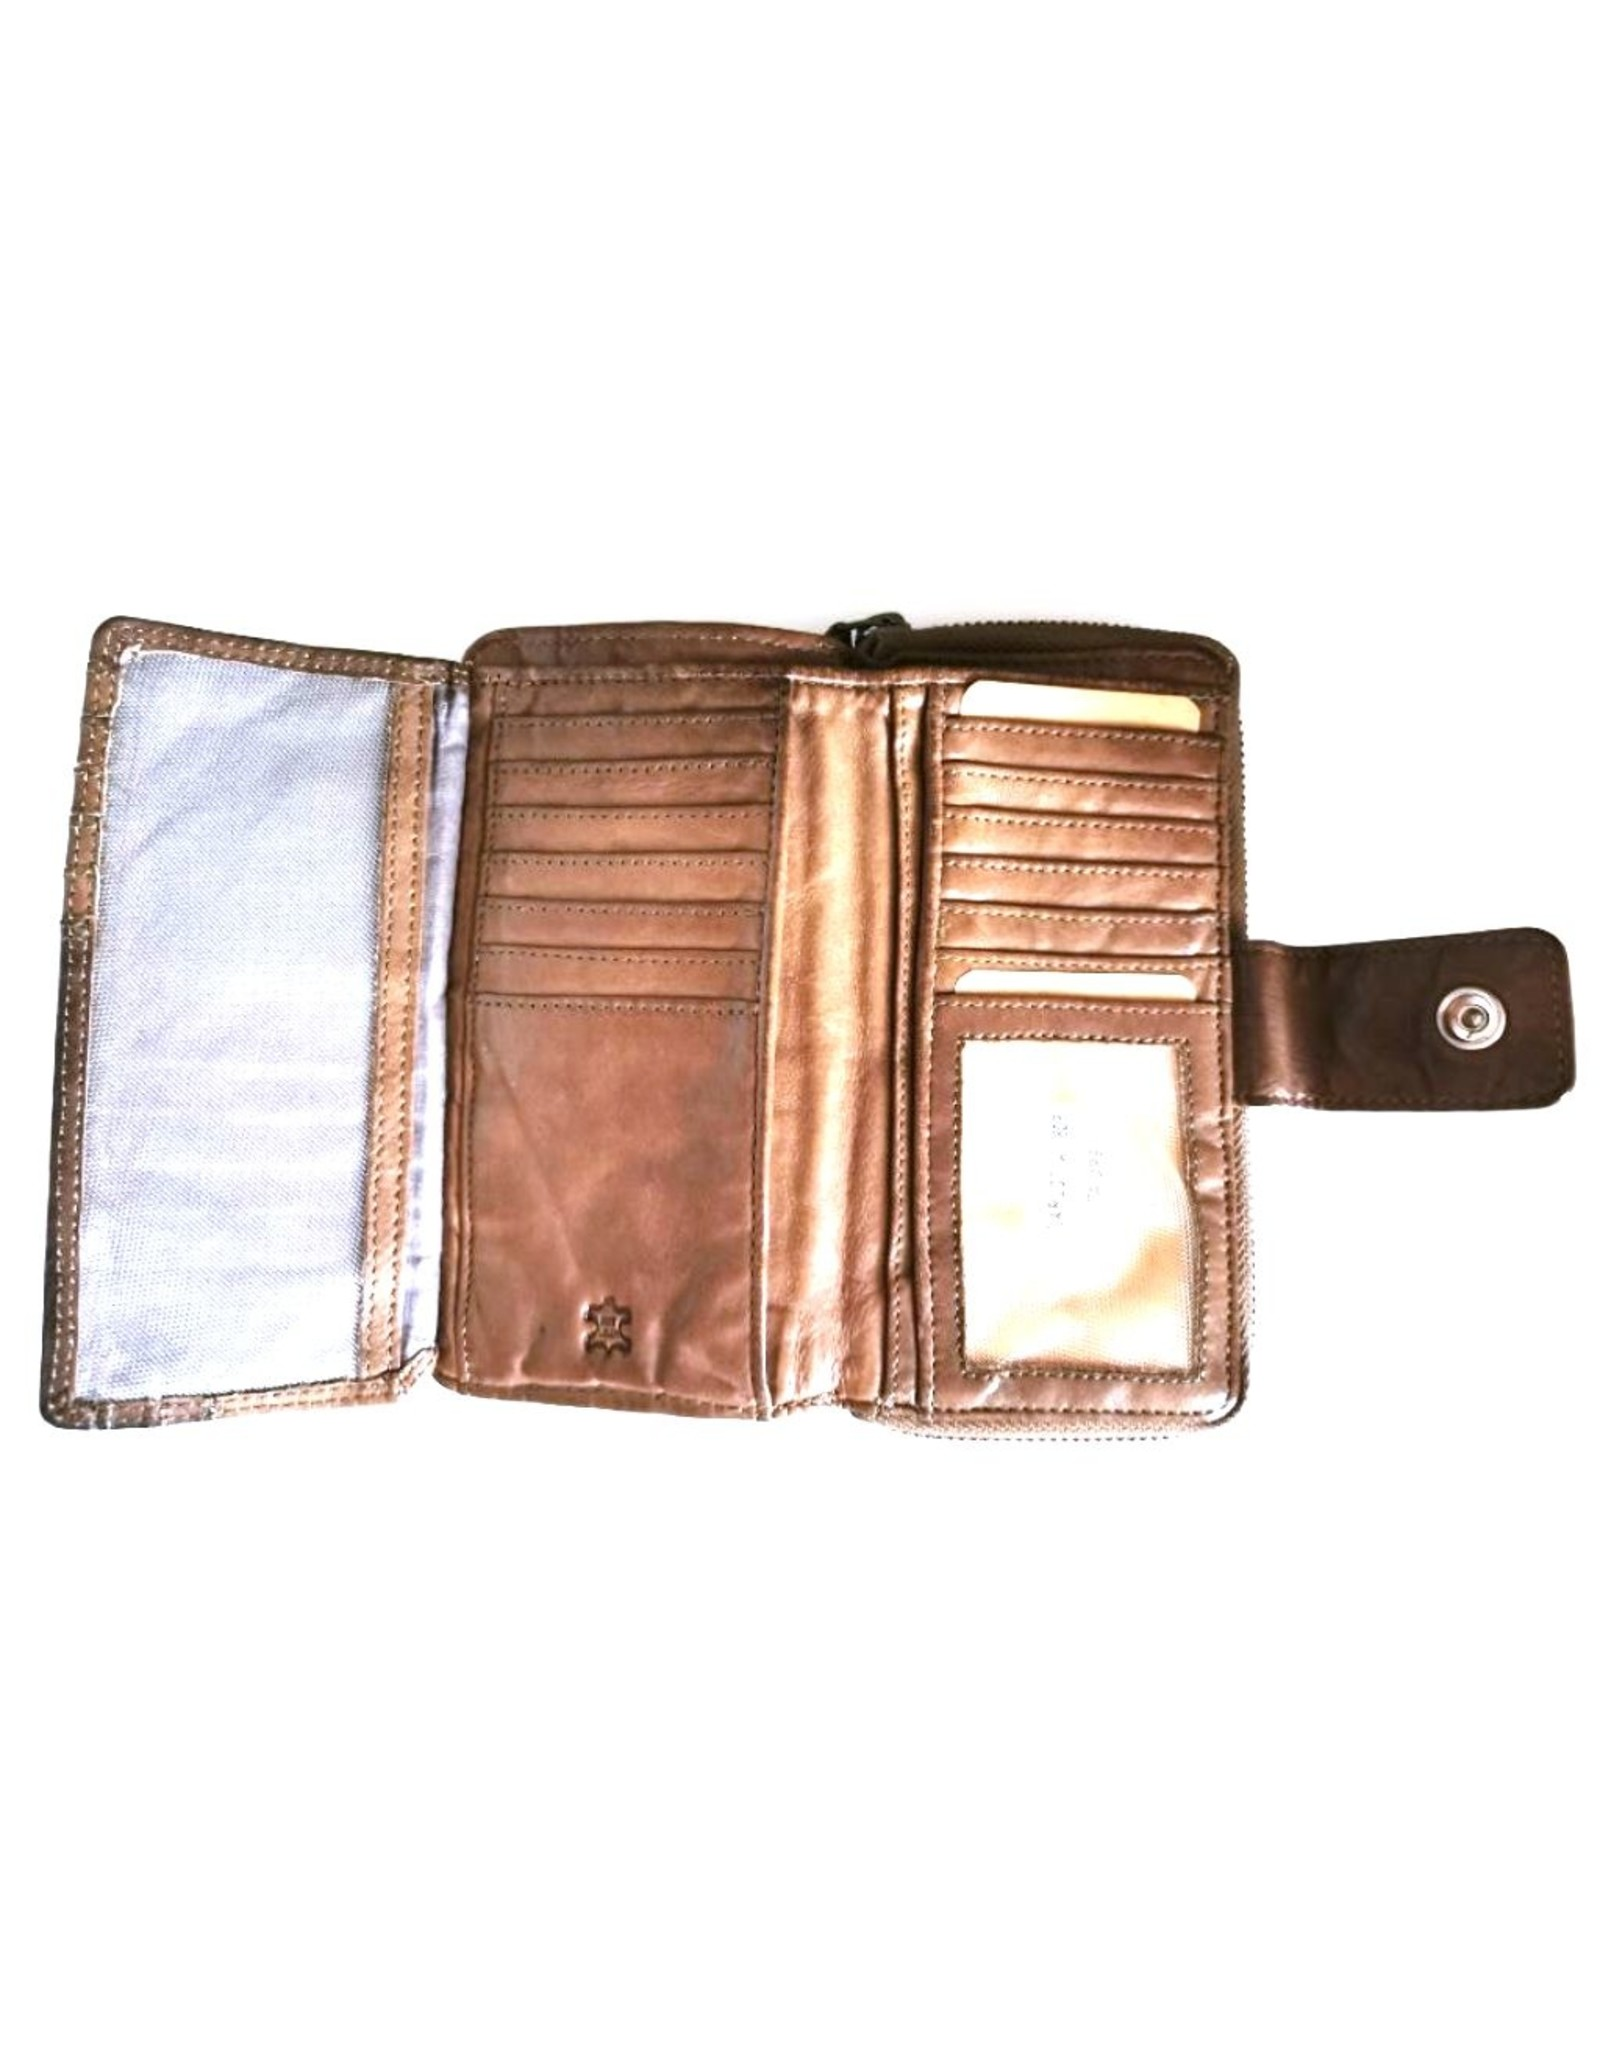 Bellicci Leather Wallets - Leather wallet braided washed leather Bellicci (taupe)